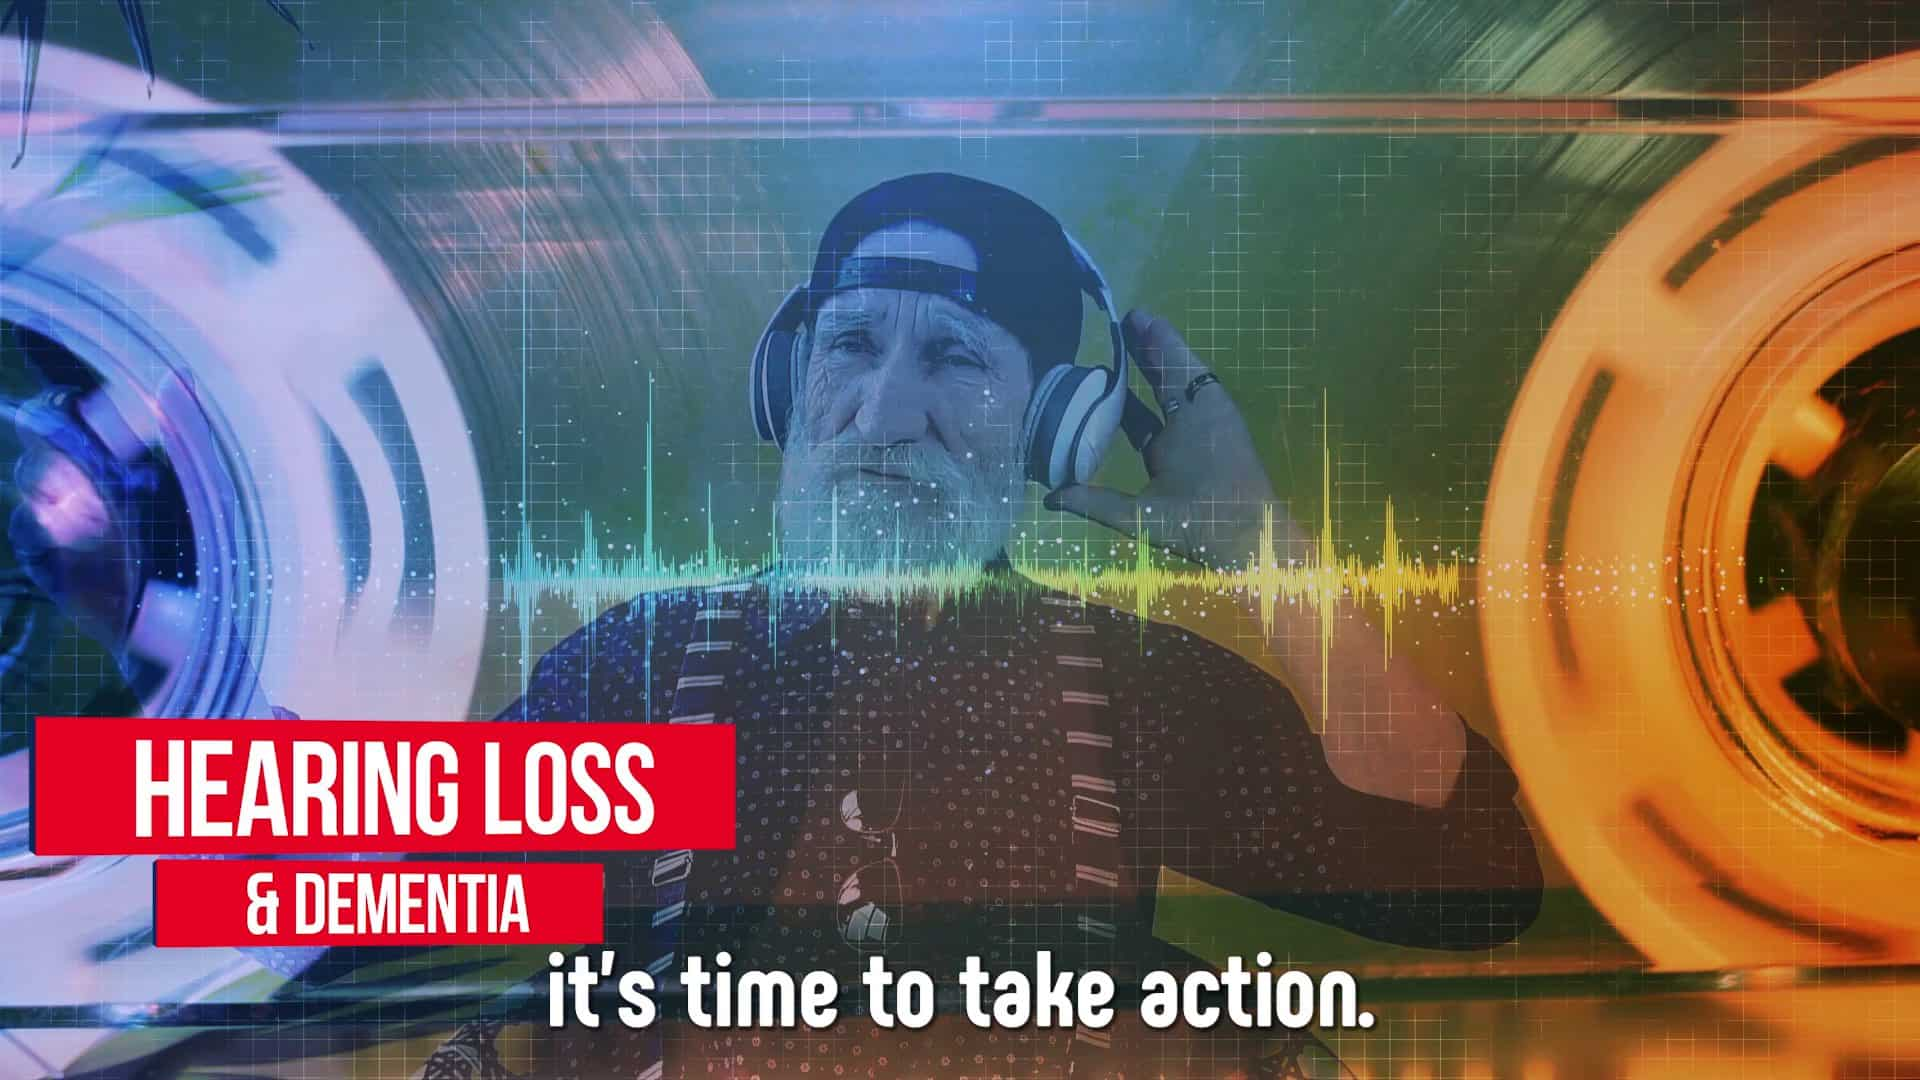 Hearing loss can lead to dementia